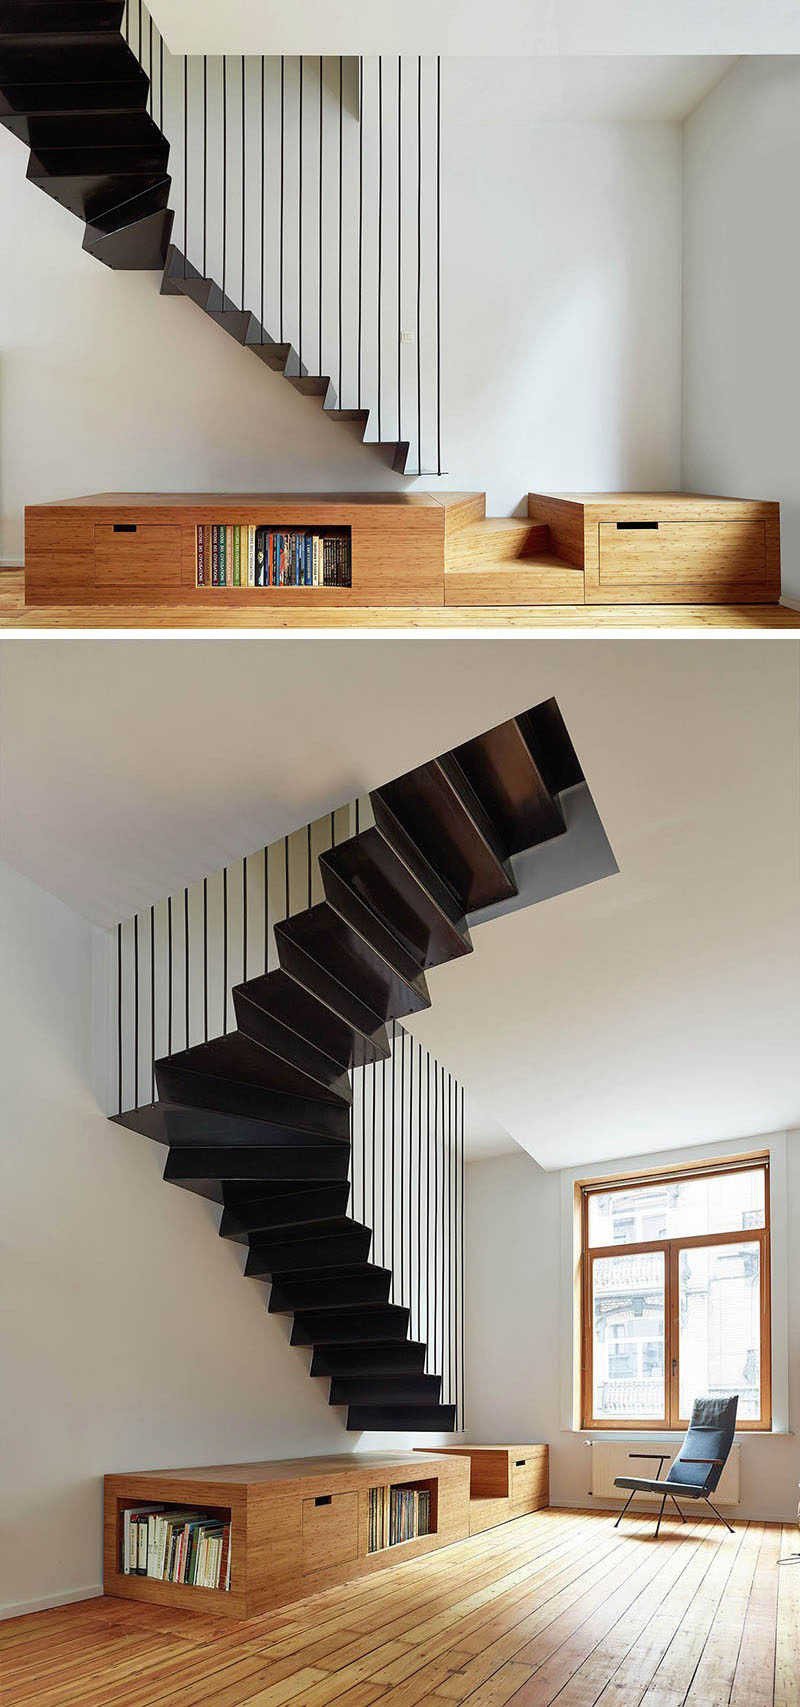 These suspended black steel stairs take up little space in the interior and add contrast to the white and wood palette.